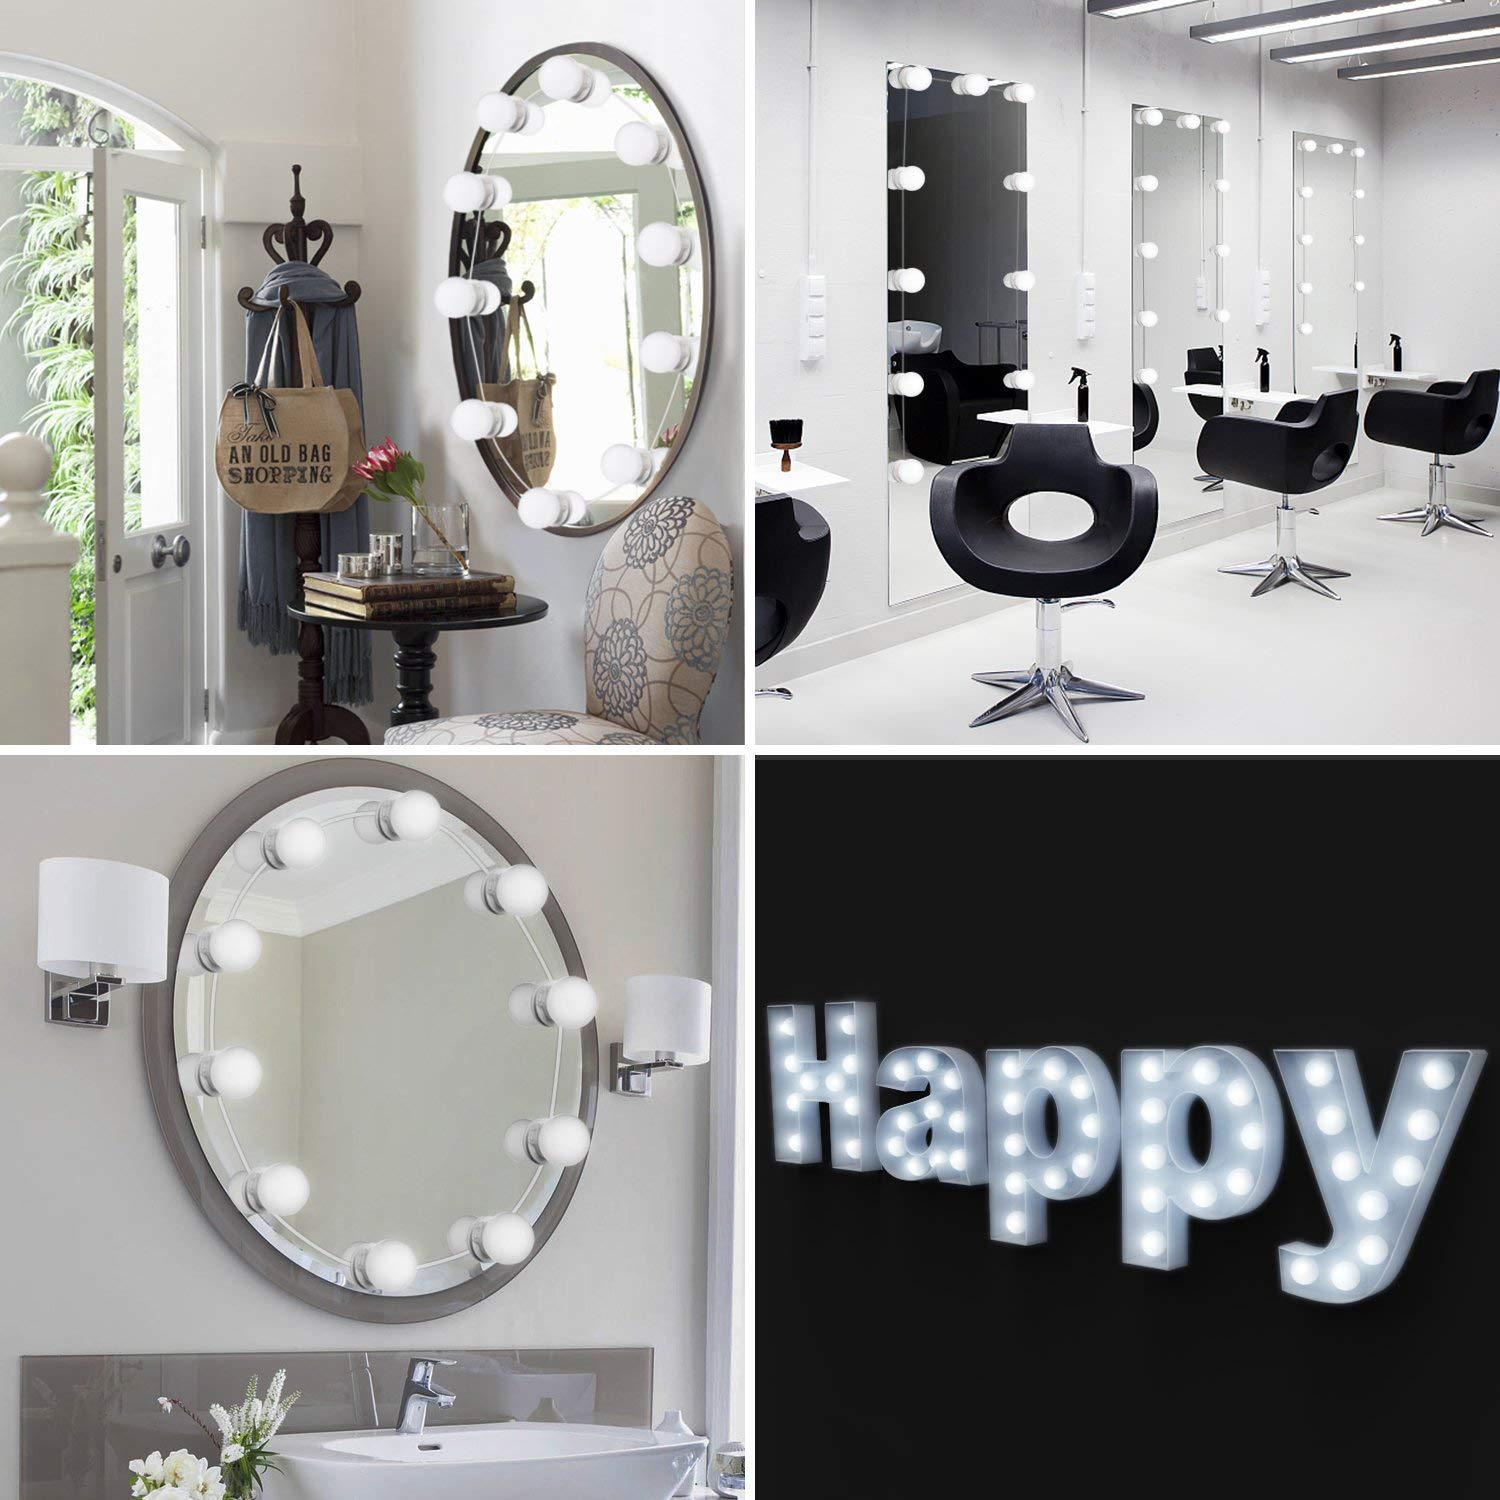 Vanity Light Mirror Hollywood LED Lights For Mirror With 10 Dimmable Light Bulbs, Oroncho Vanity Light Kit Lighting Fixture Strip For Bedroom Makeup Vanity Table Set Dressing Room (Mirror Not Include) by Oroncho (Image #2)